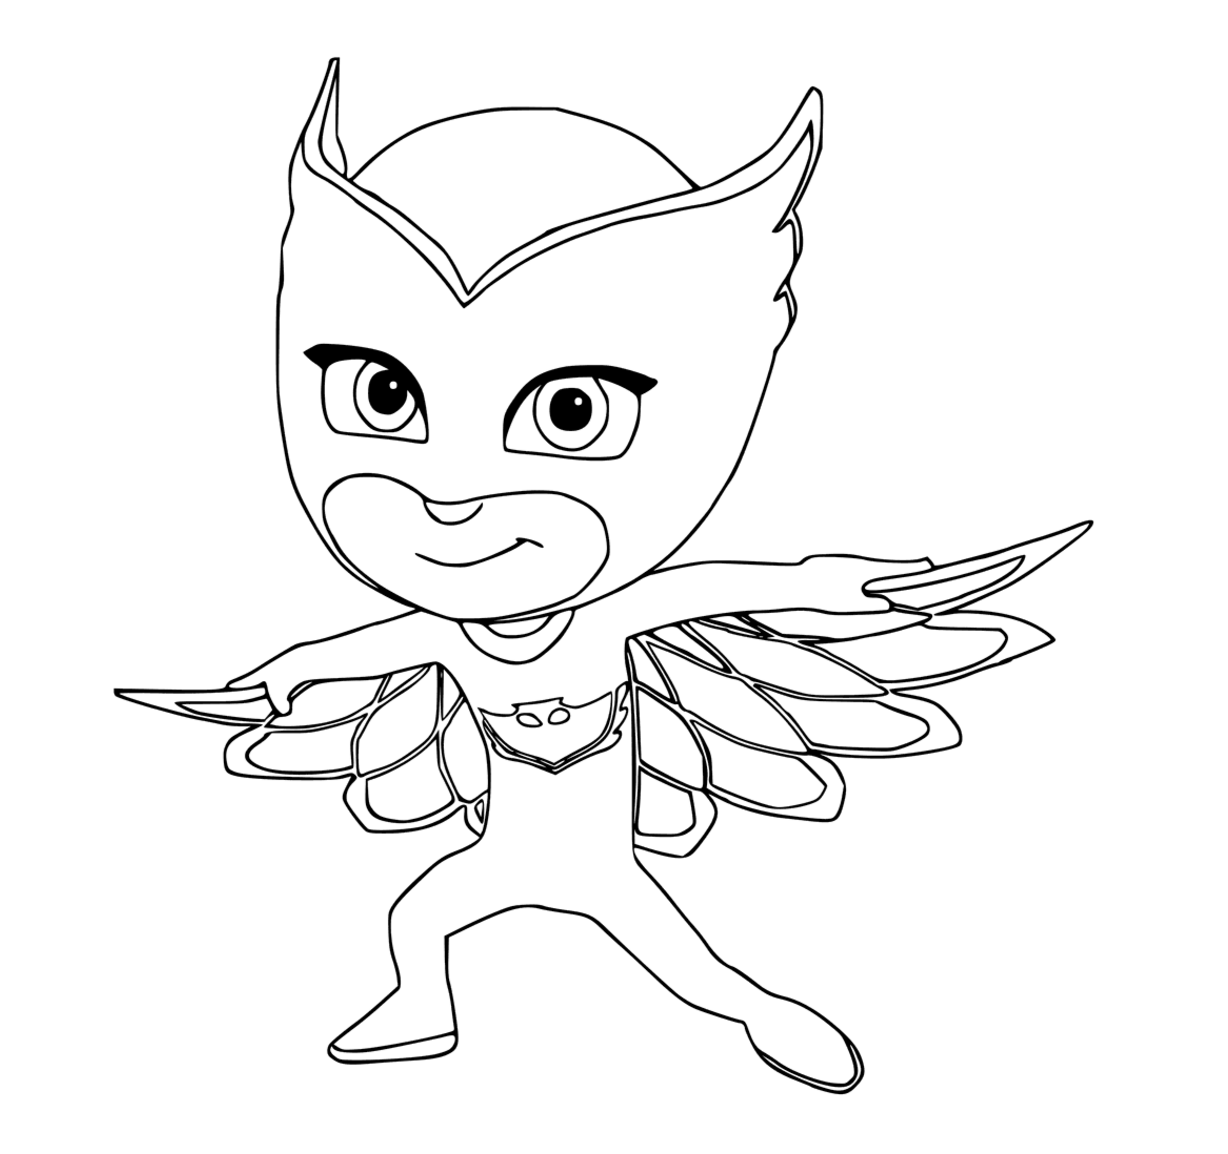 - Owlette Colouring Page Pj Masks Coloring Pages, Coloring Books